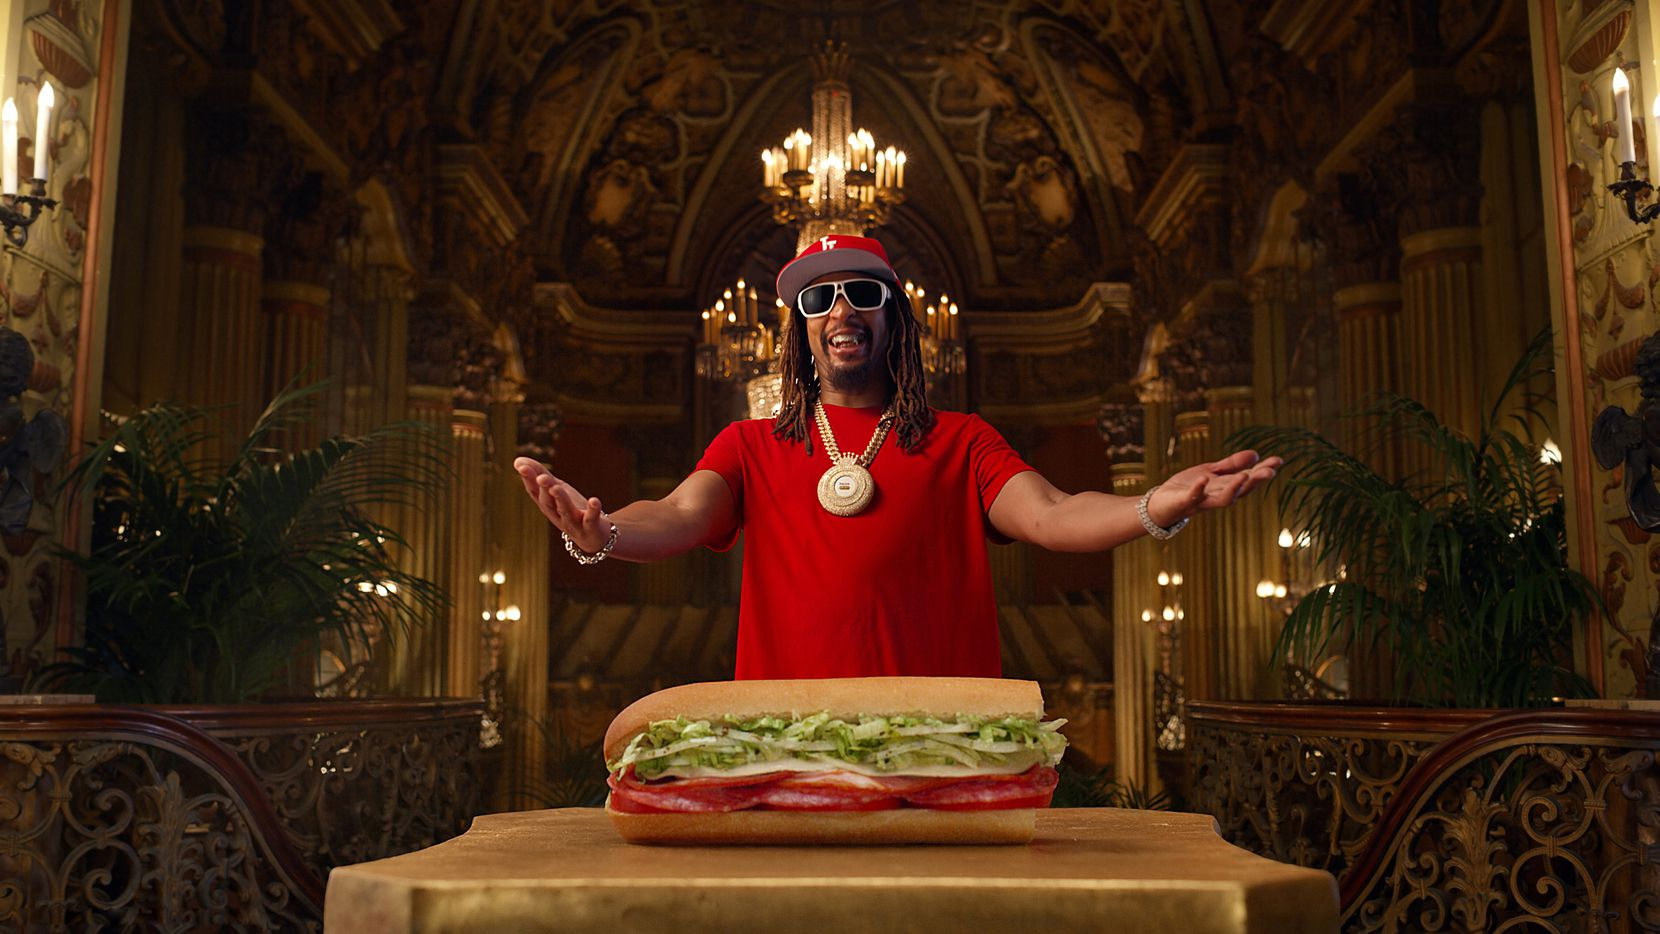 Jimmy John's is releasing a new $3 sandwich called the Little John. Rapper Lil John is in the commercials.